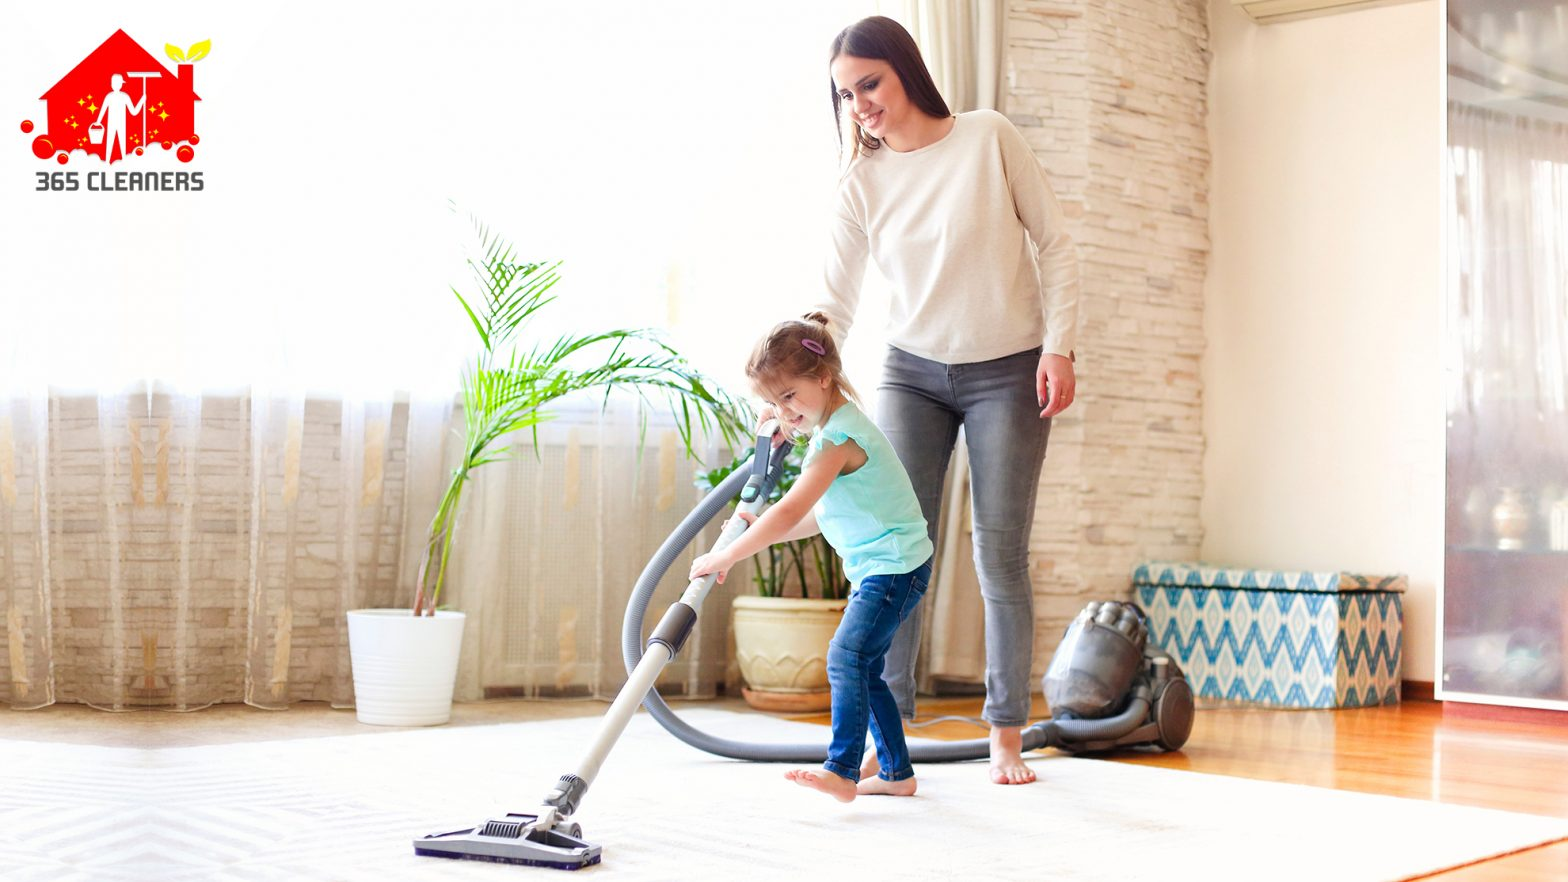 Carpet Cleaning in homes with Kids and Seniors